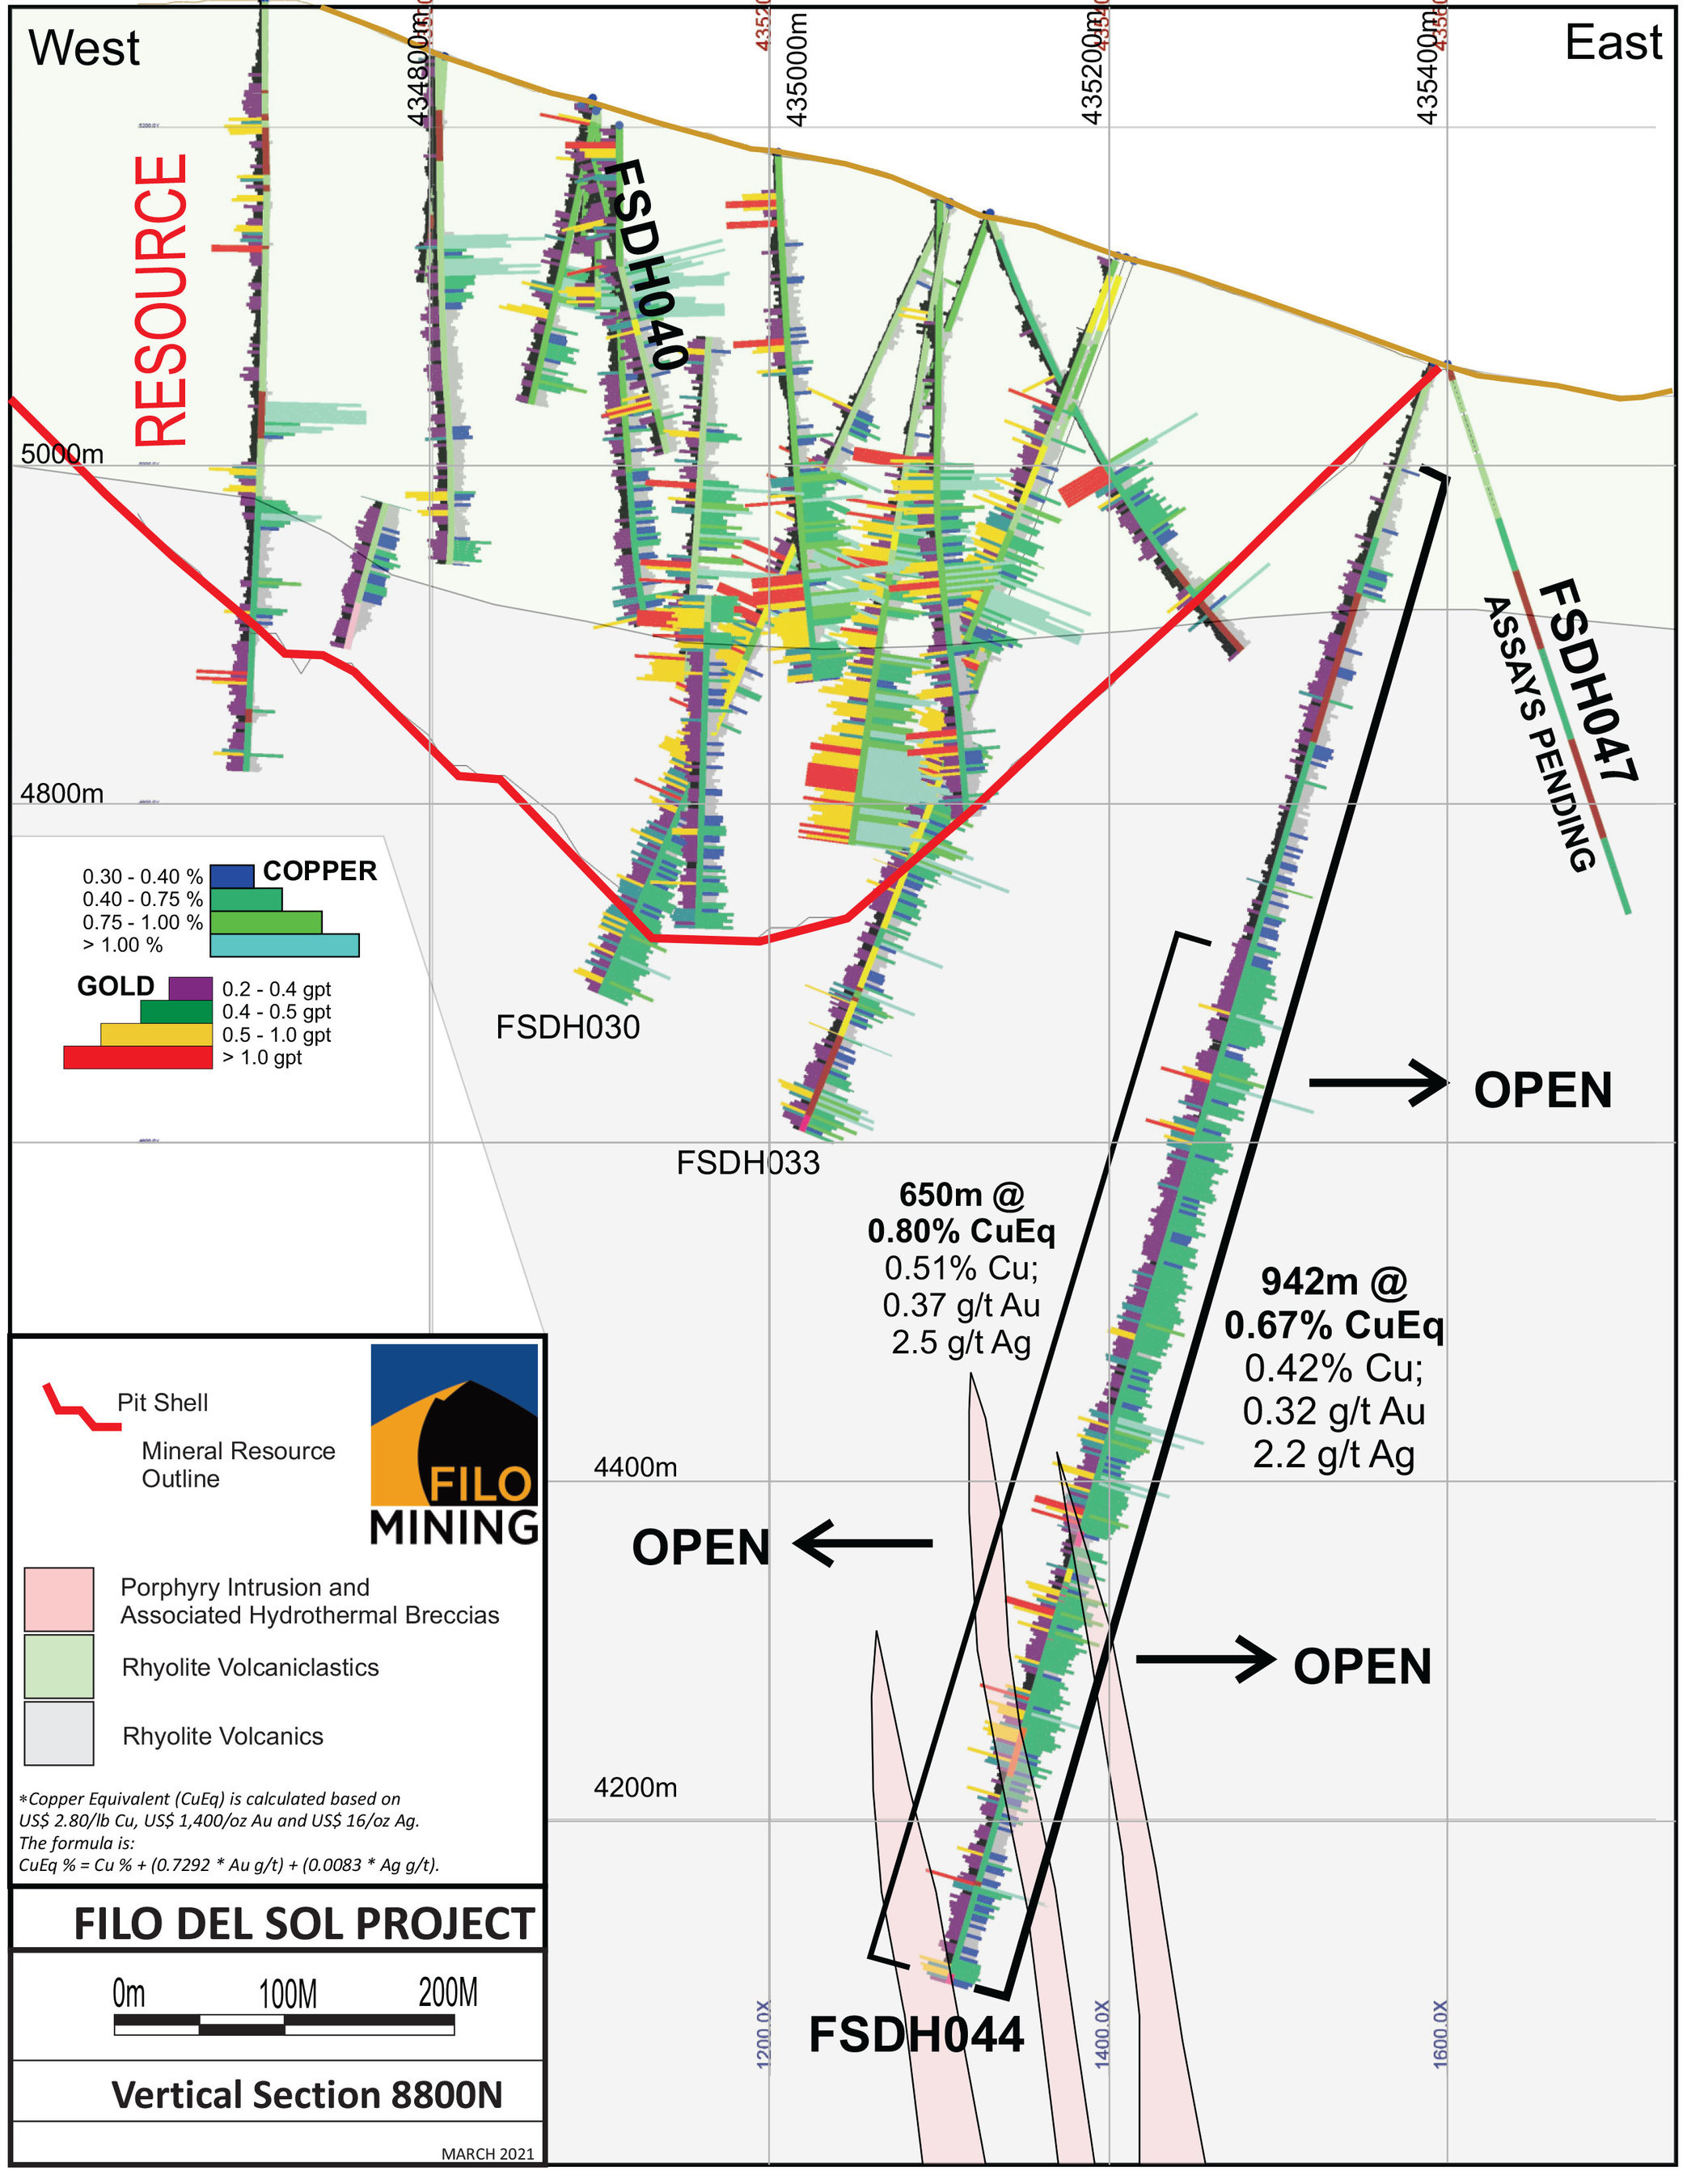 Filo Mining Vertical Section 8800N, West-East (CNW Group/Filo Mining Corp.)